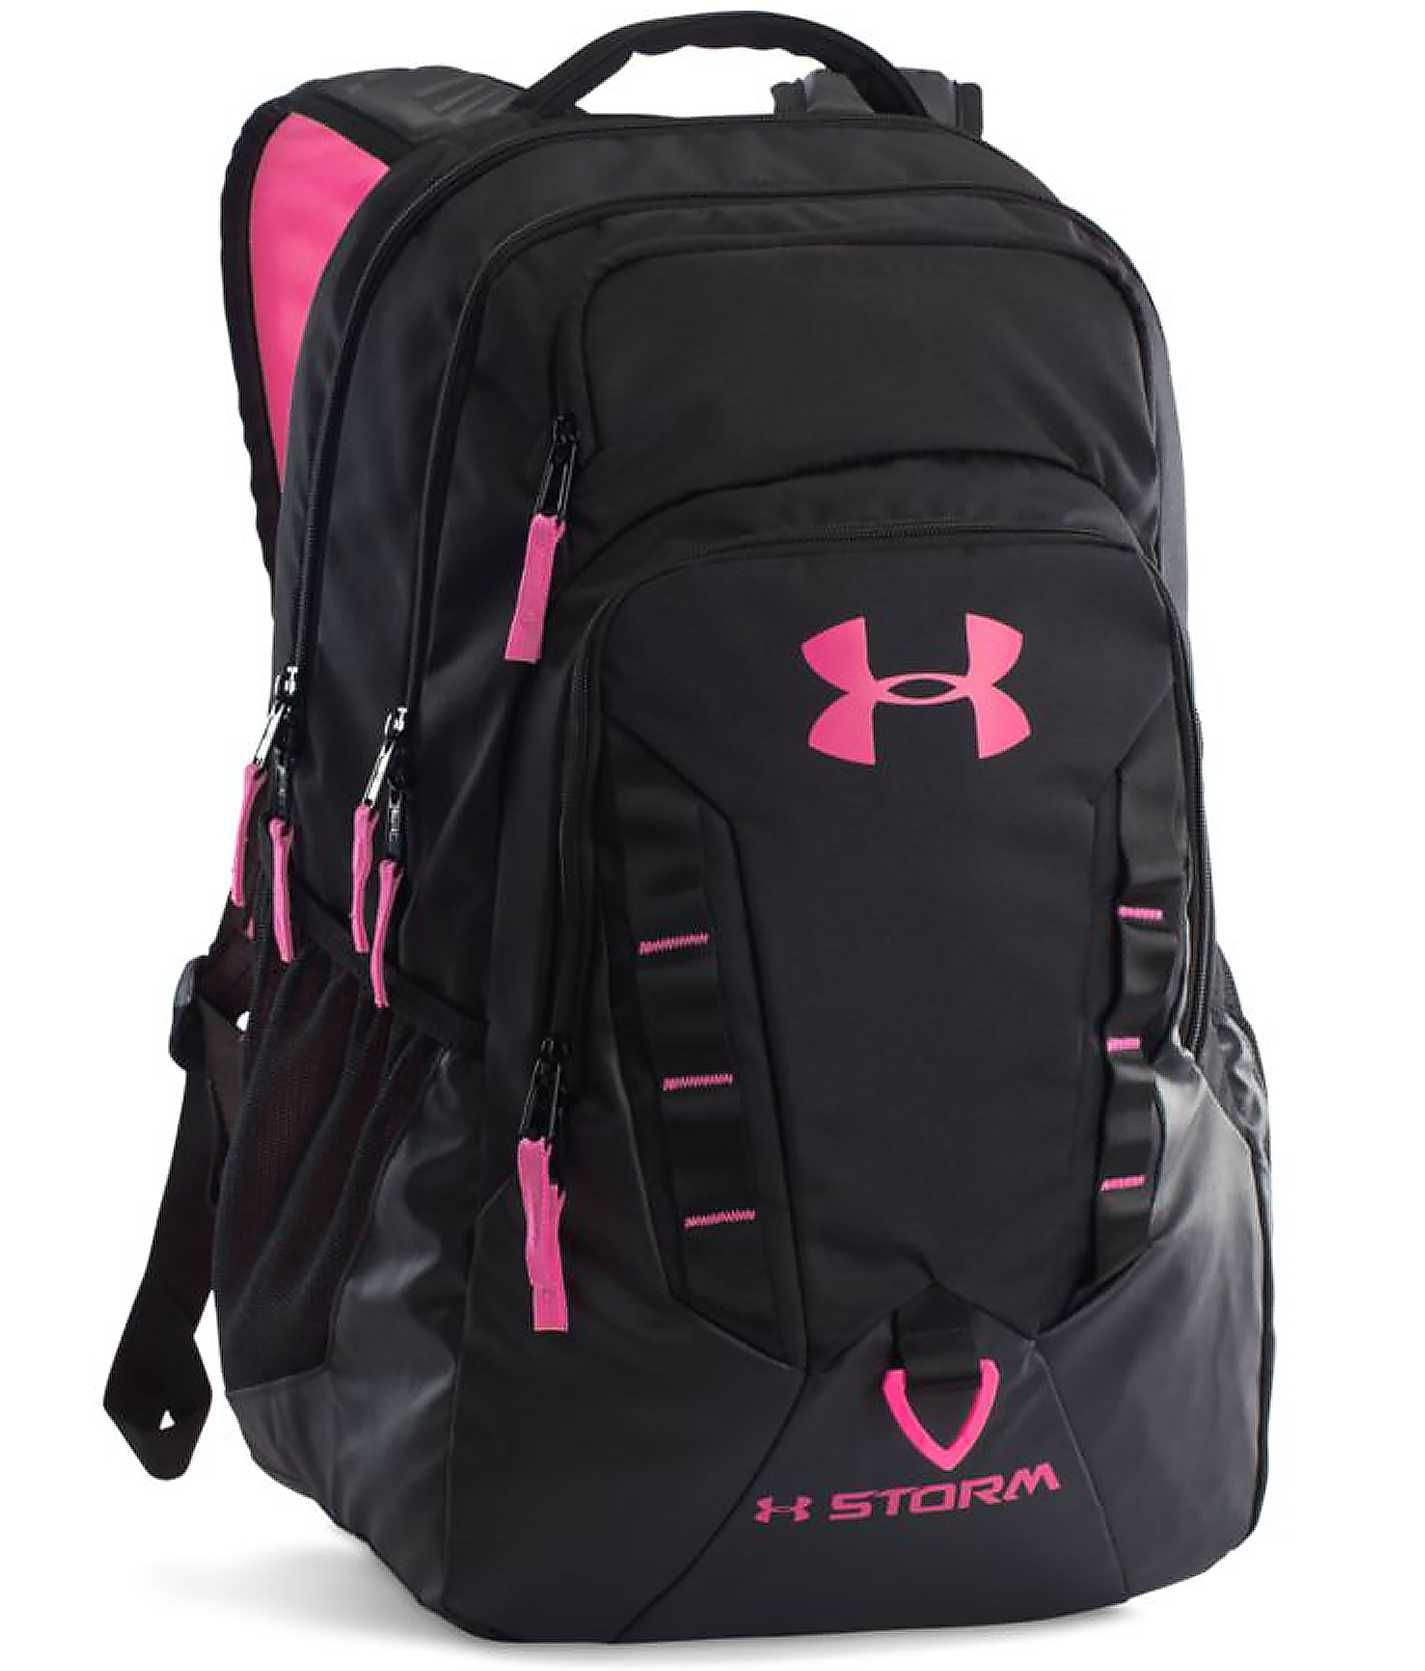 under armour recruit backpack cheap   OFF61% The Largest Catalog Discounts 52a74758ed